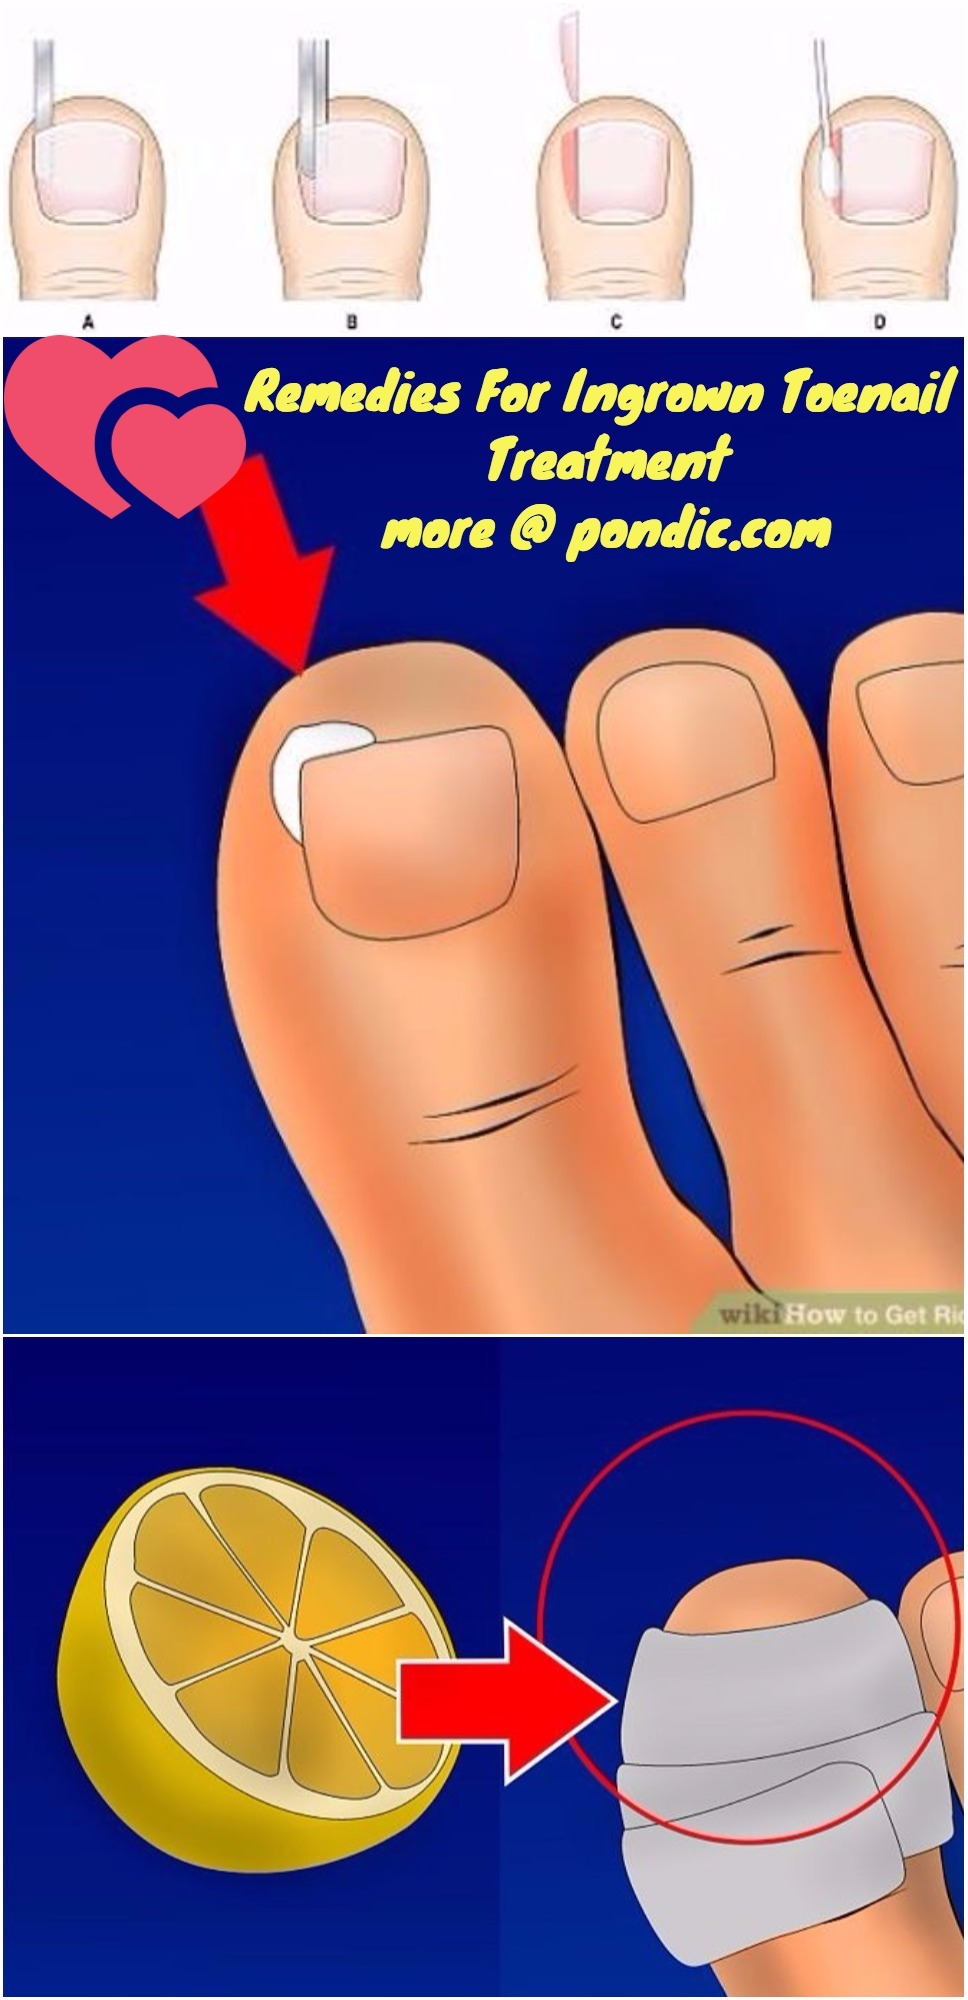 Remedies For Ingrown Toenail Treatment - Pondic